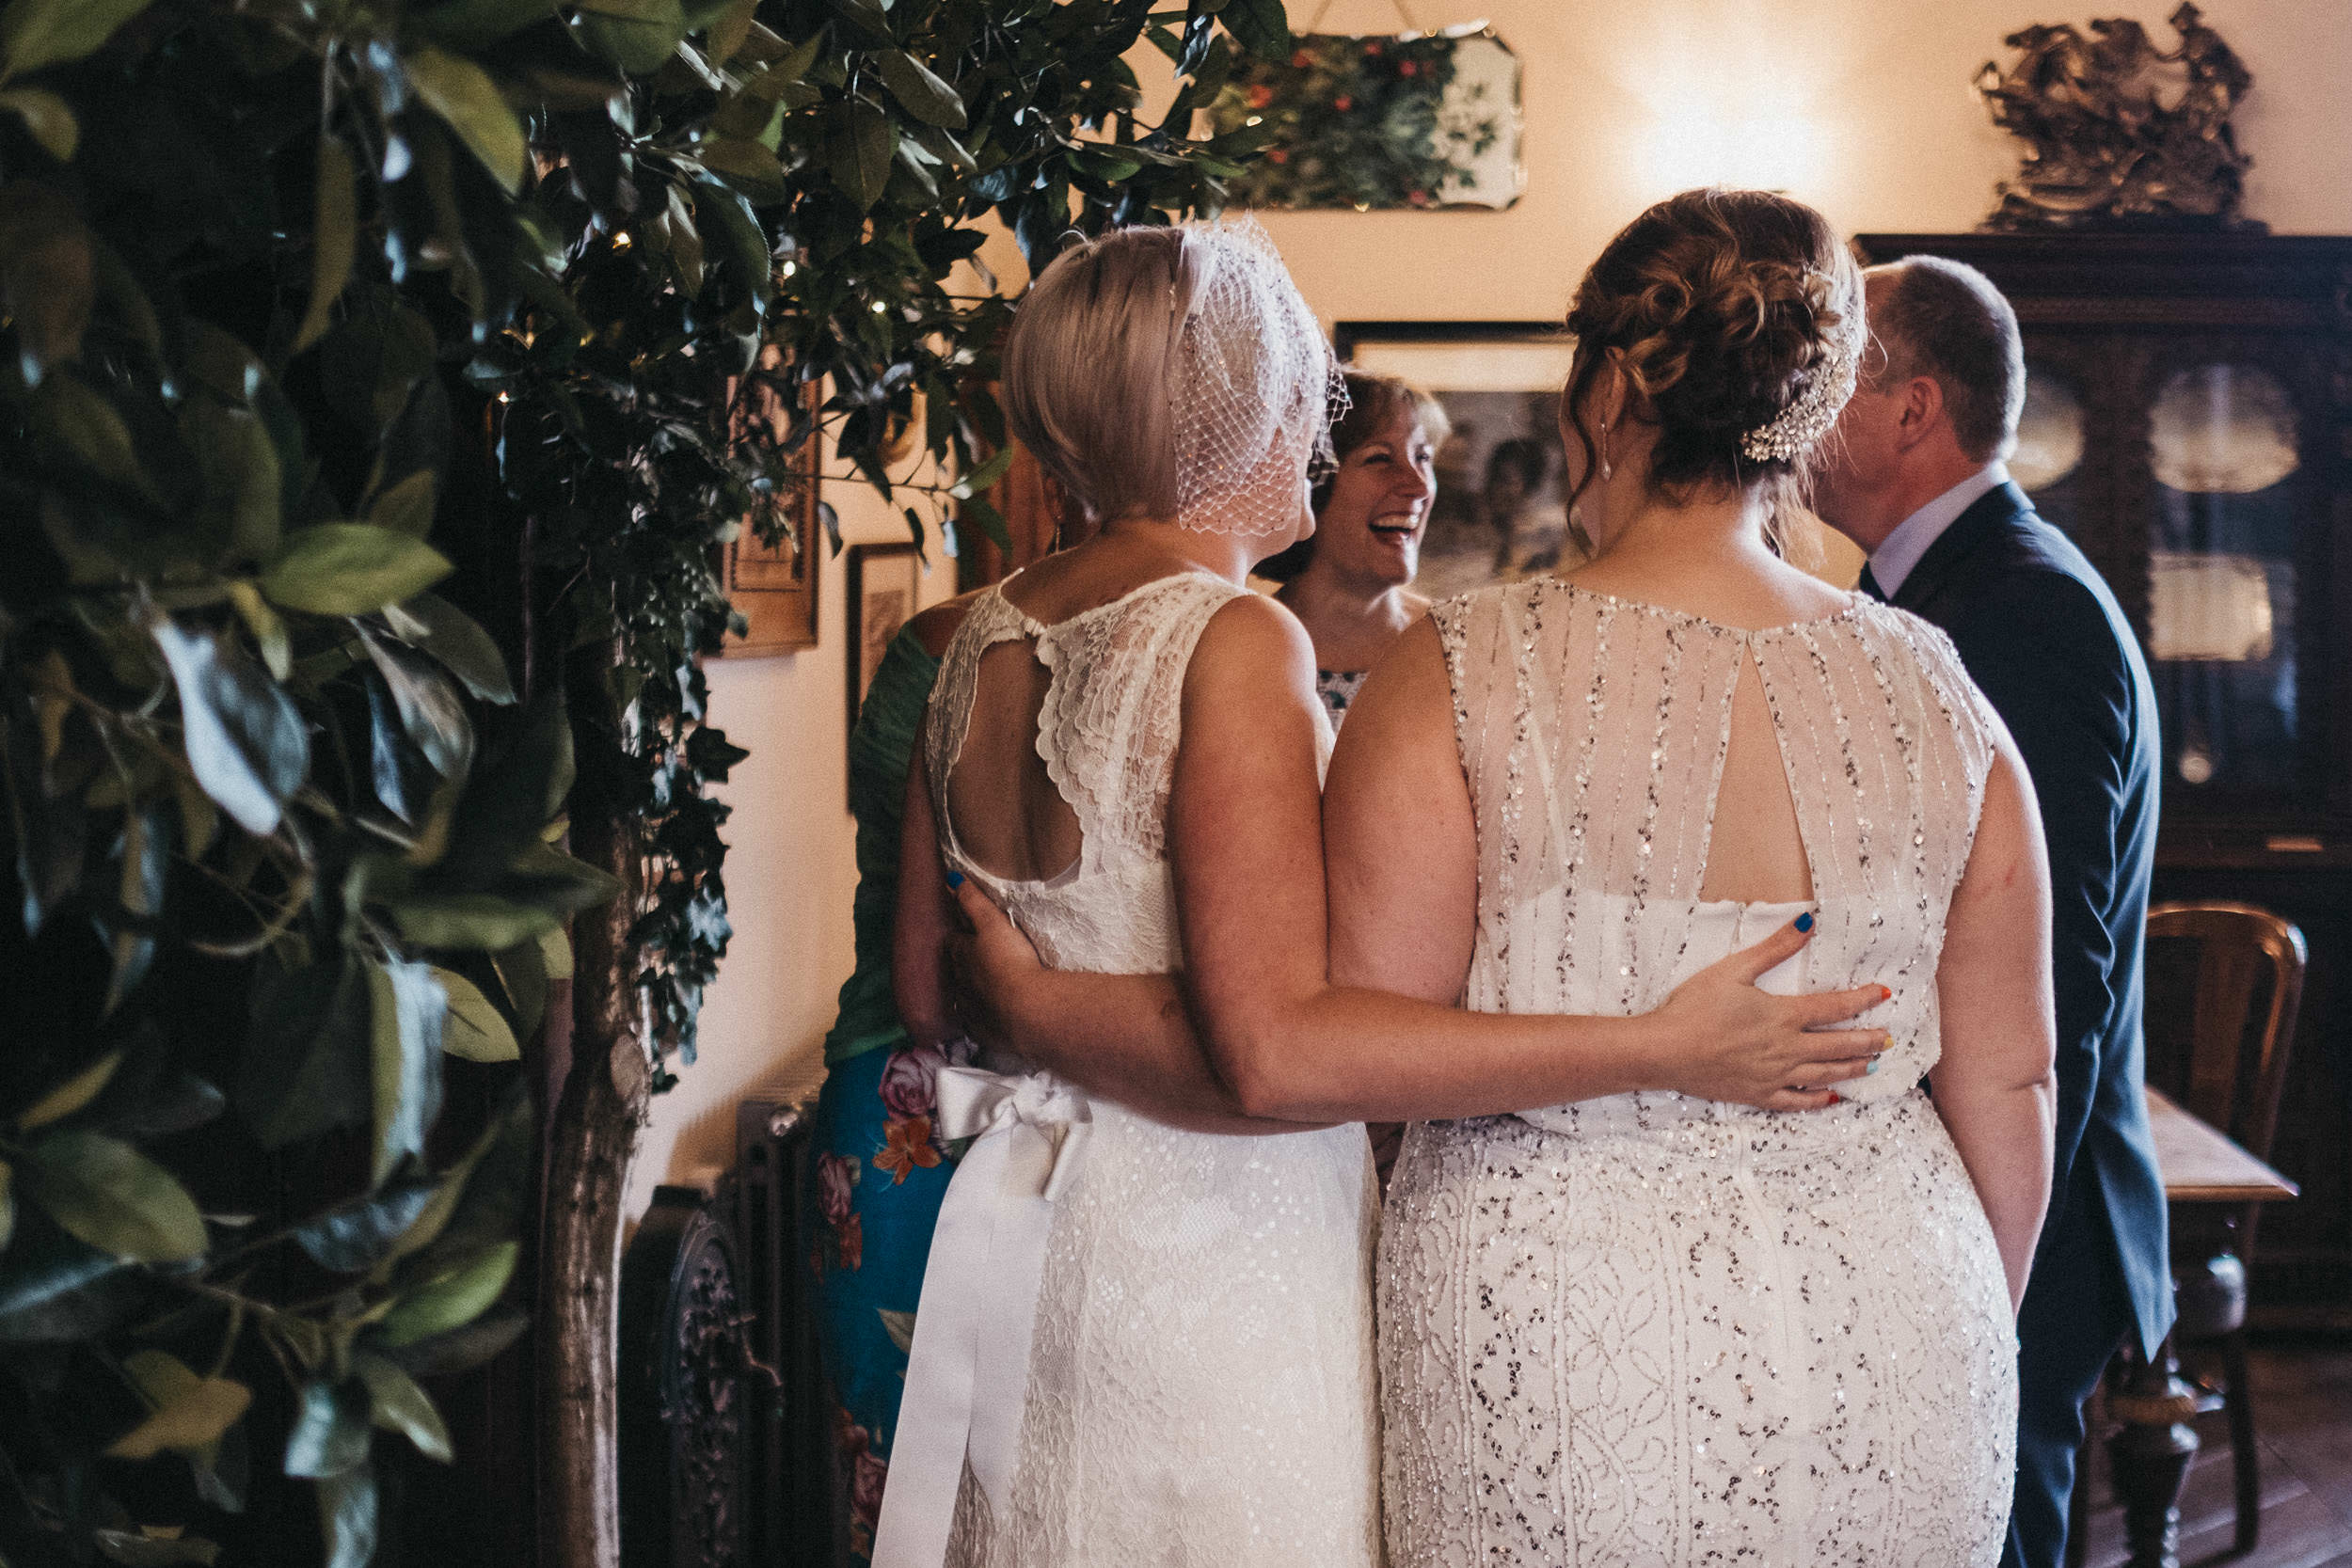 Brides hold each others backs during wedding reception